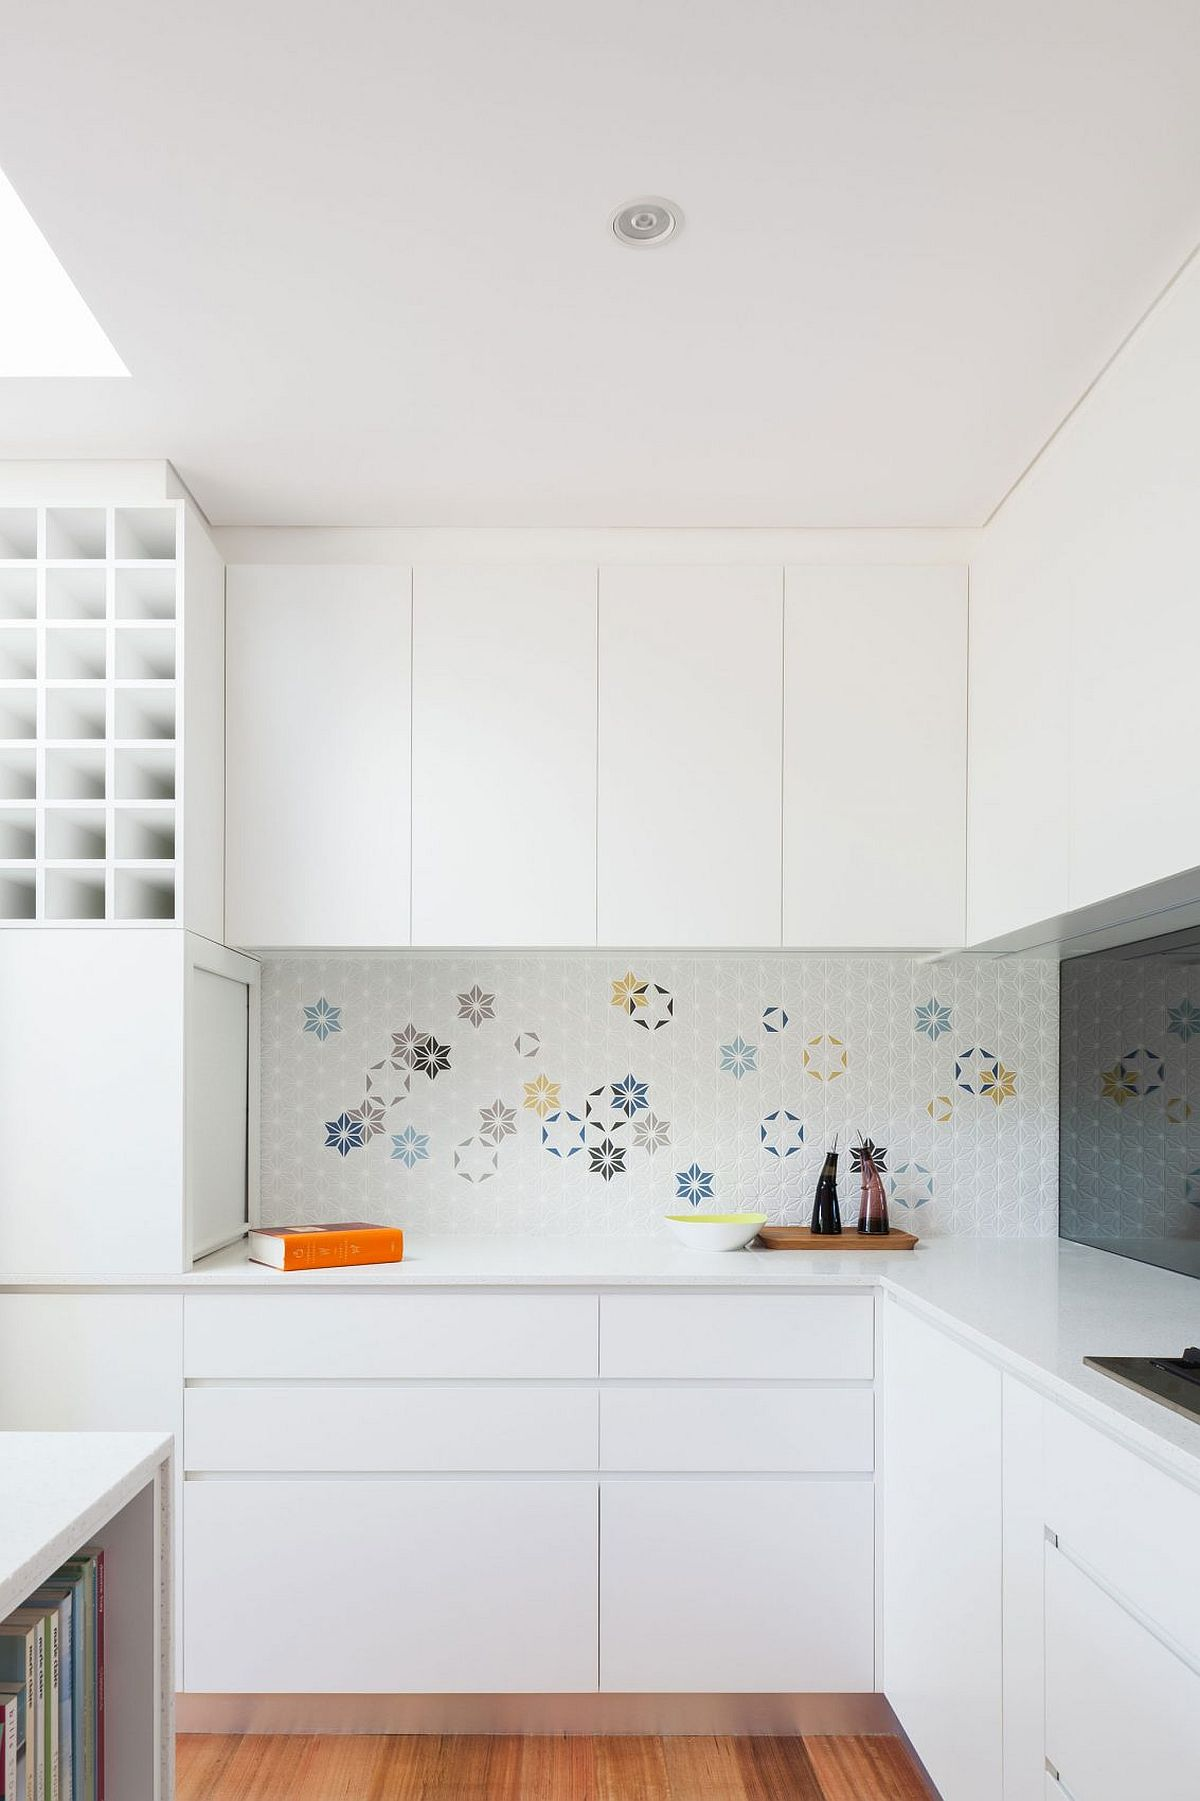 Colorful tiled backsplash with geo style for the kitchen